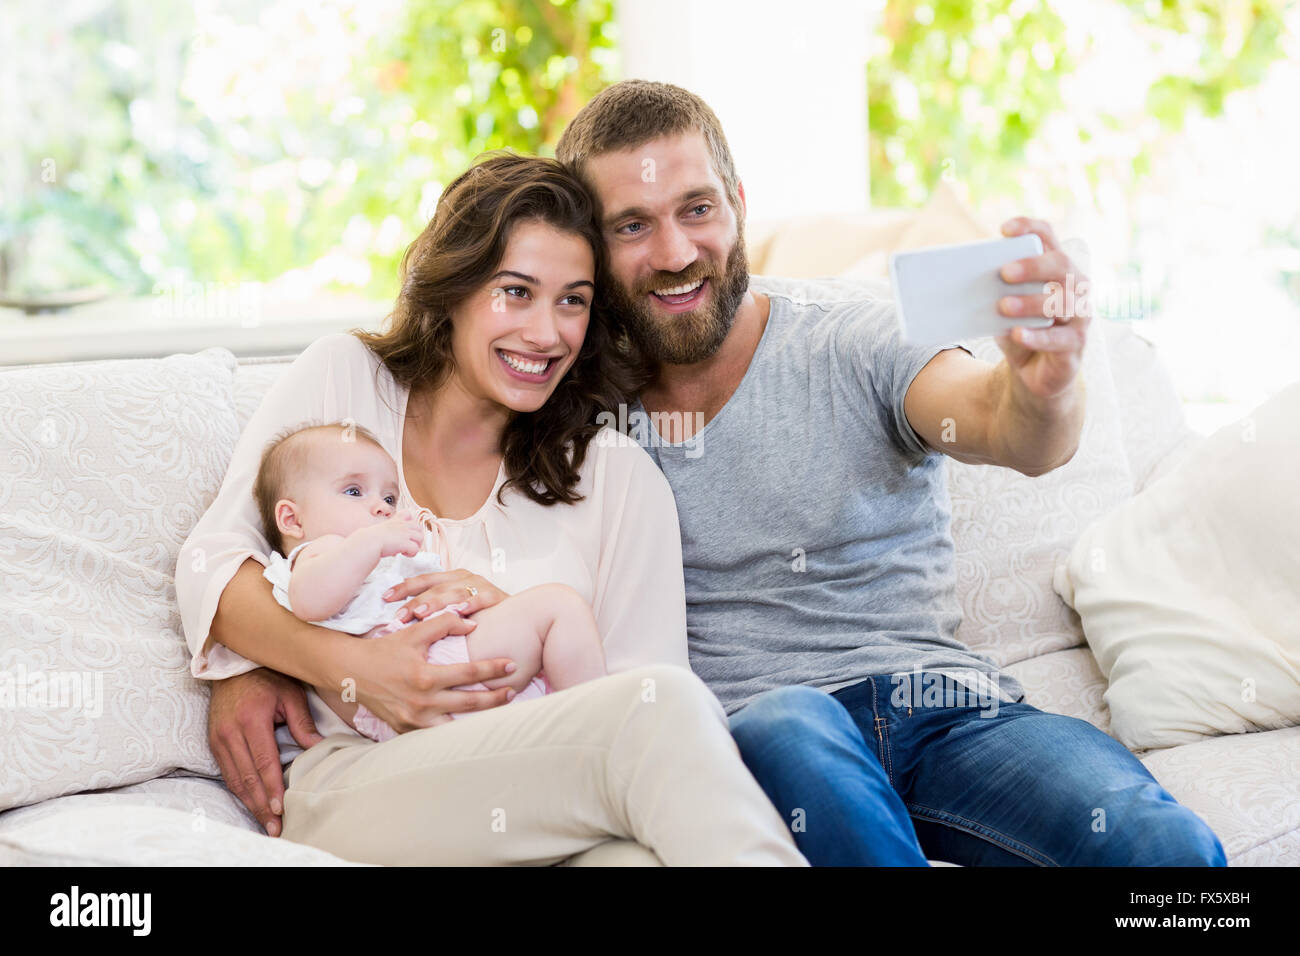 Family taking selfie on a mobile phone - Stock Image